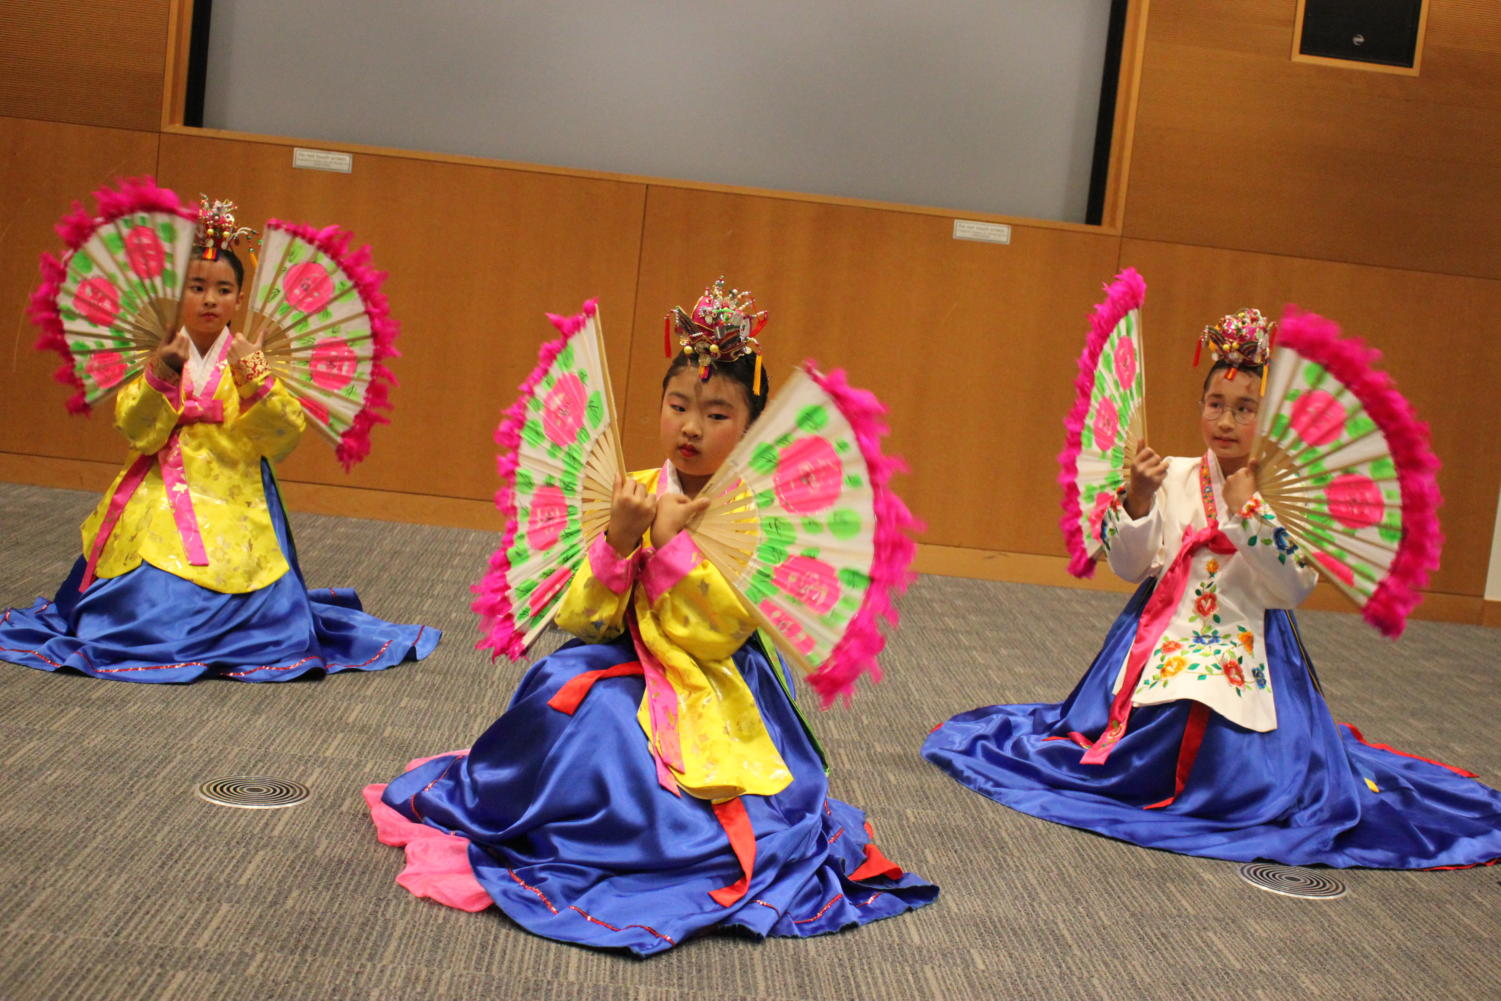 Korean dancers wave brightly colored fans decorated with flowers.